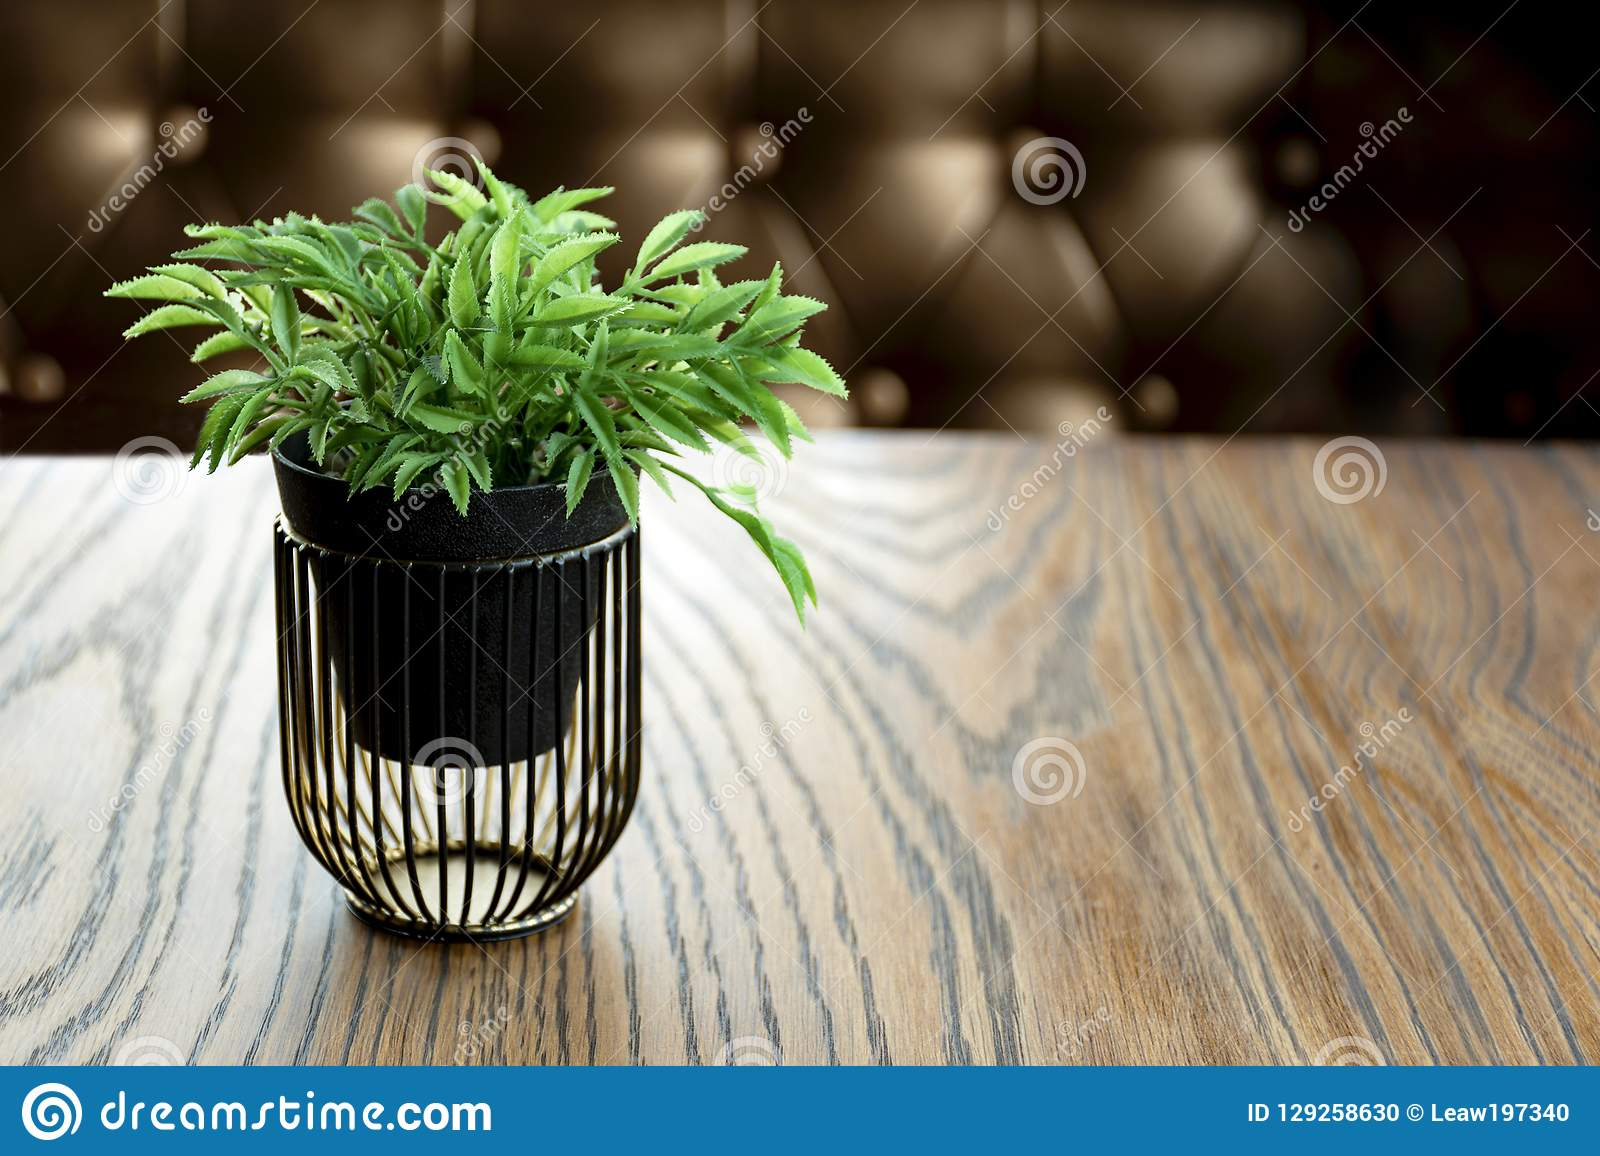 Artificial wood flowerpot on wooden table, small light brown colour in room